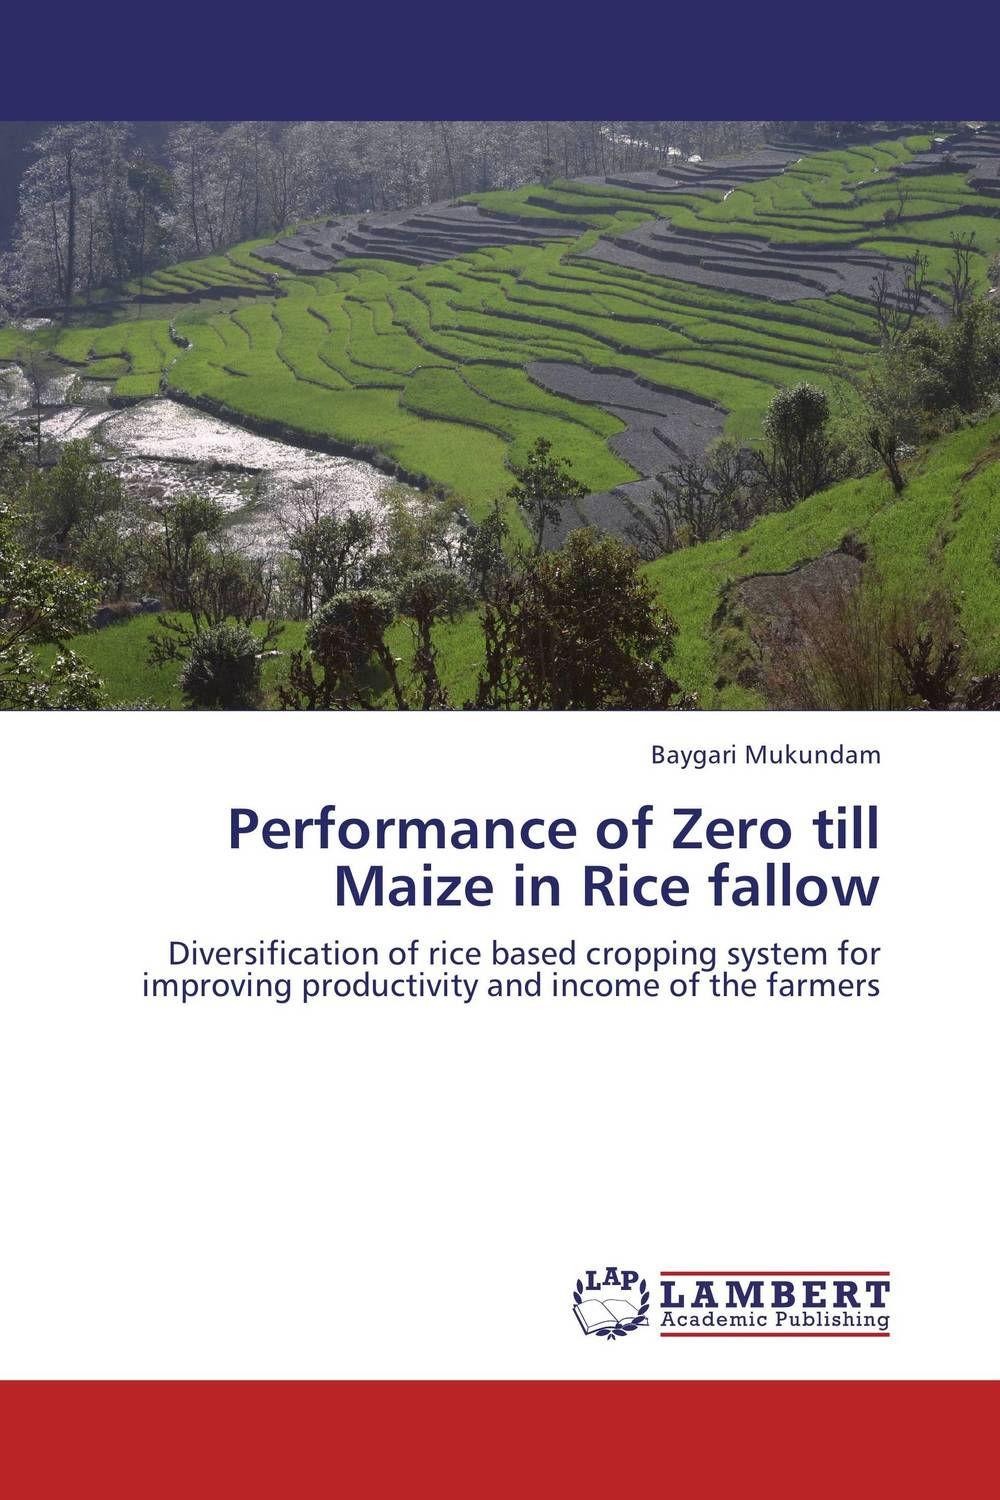 Performance of Zero till Maize in Rice fallow k r k naidu a v ramana and r veeraraghavaiah common vetch management in rice fallow blackgram